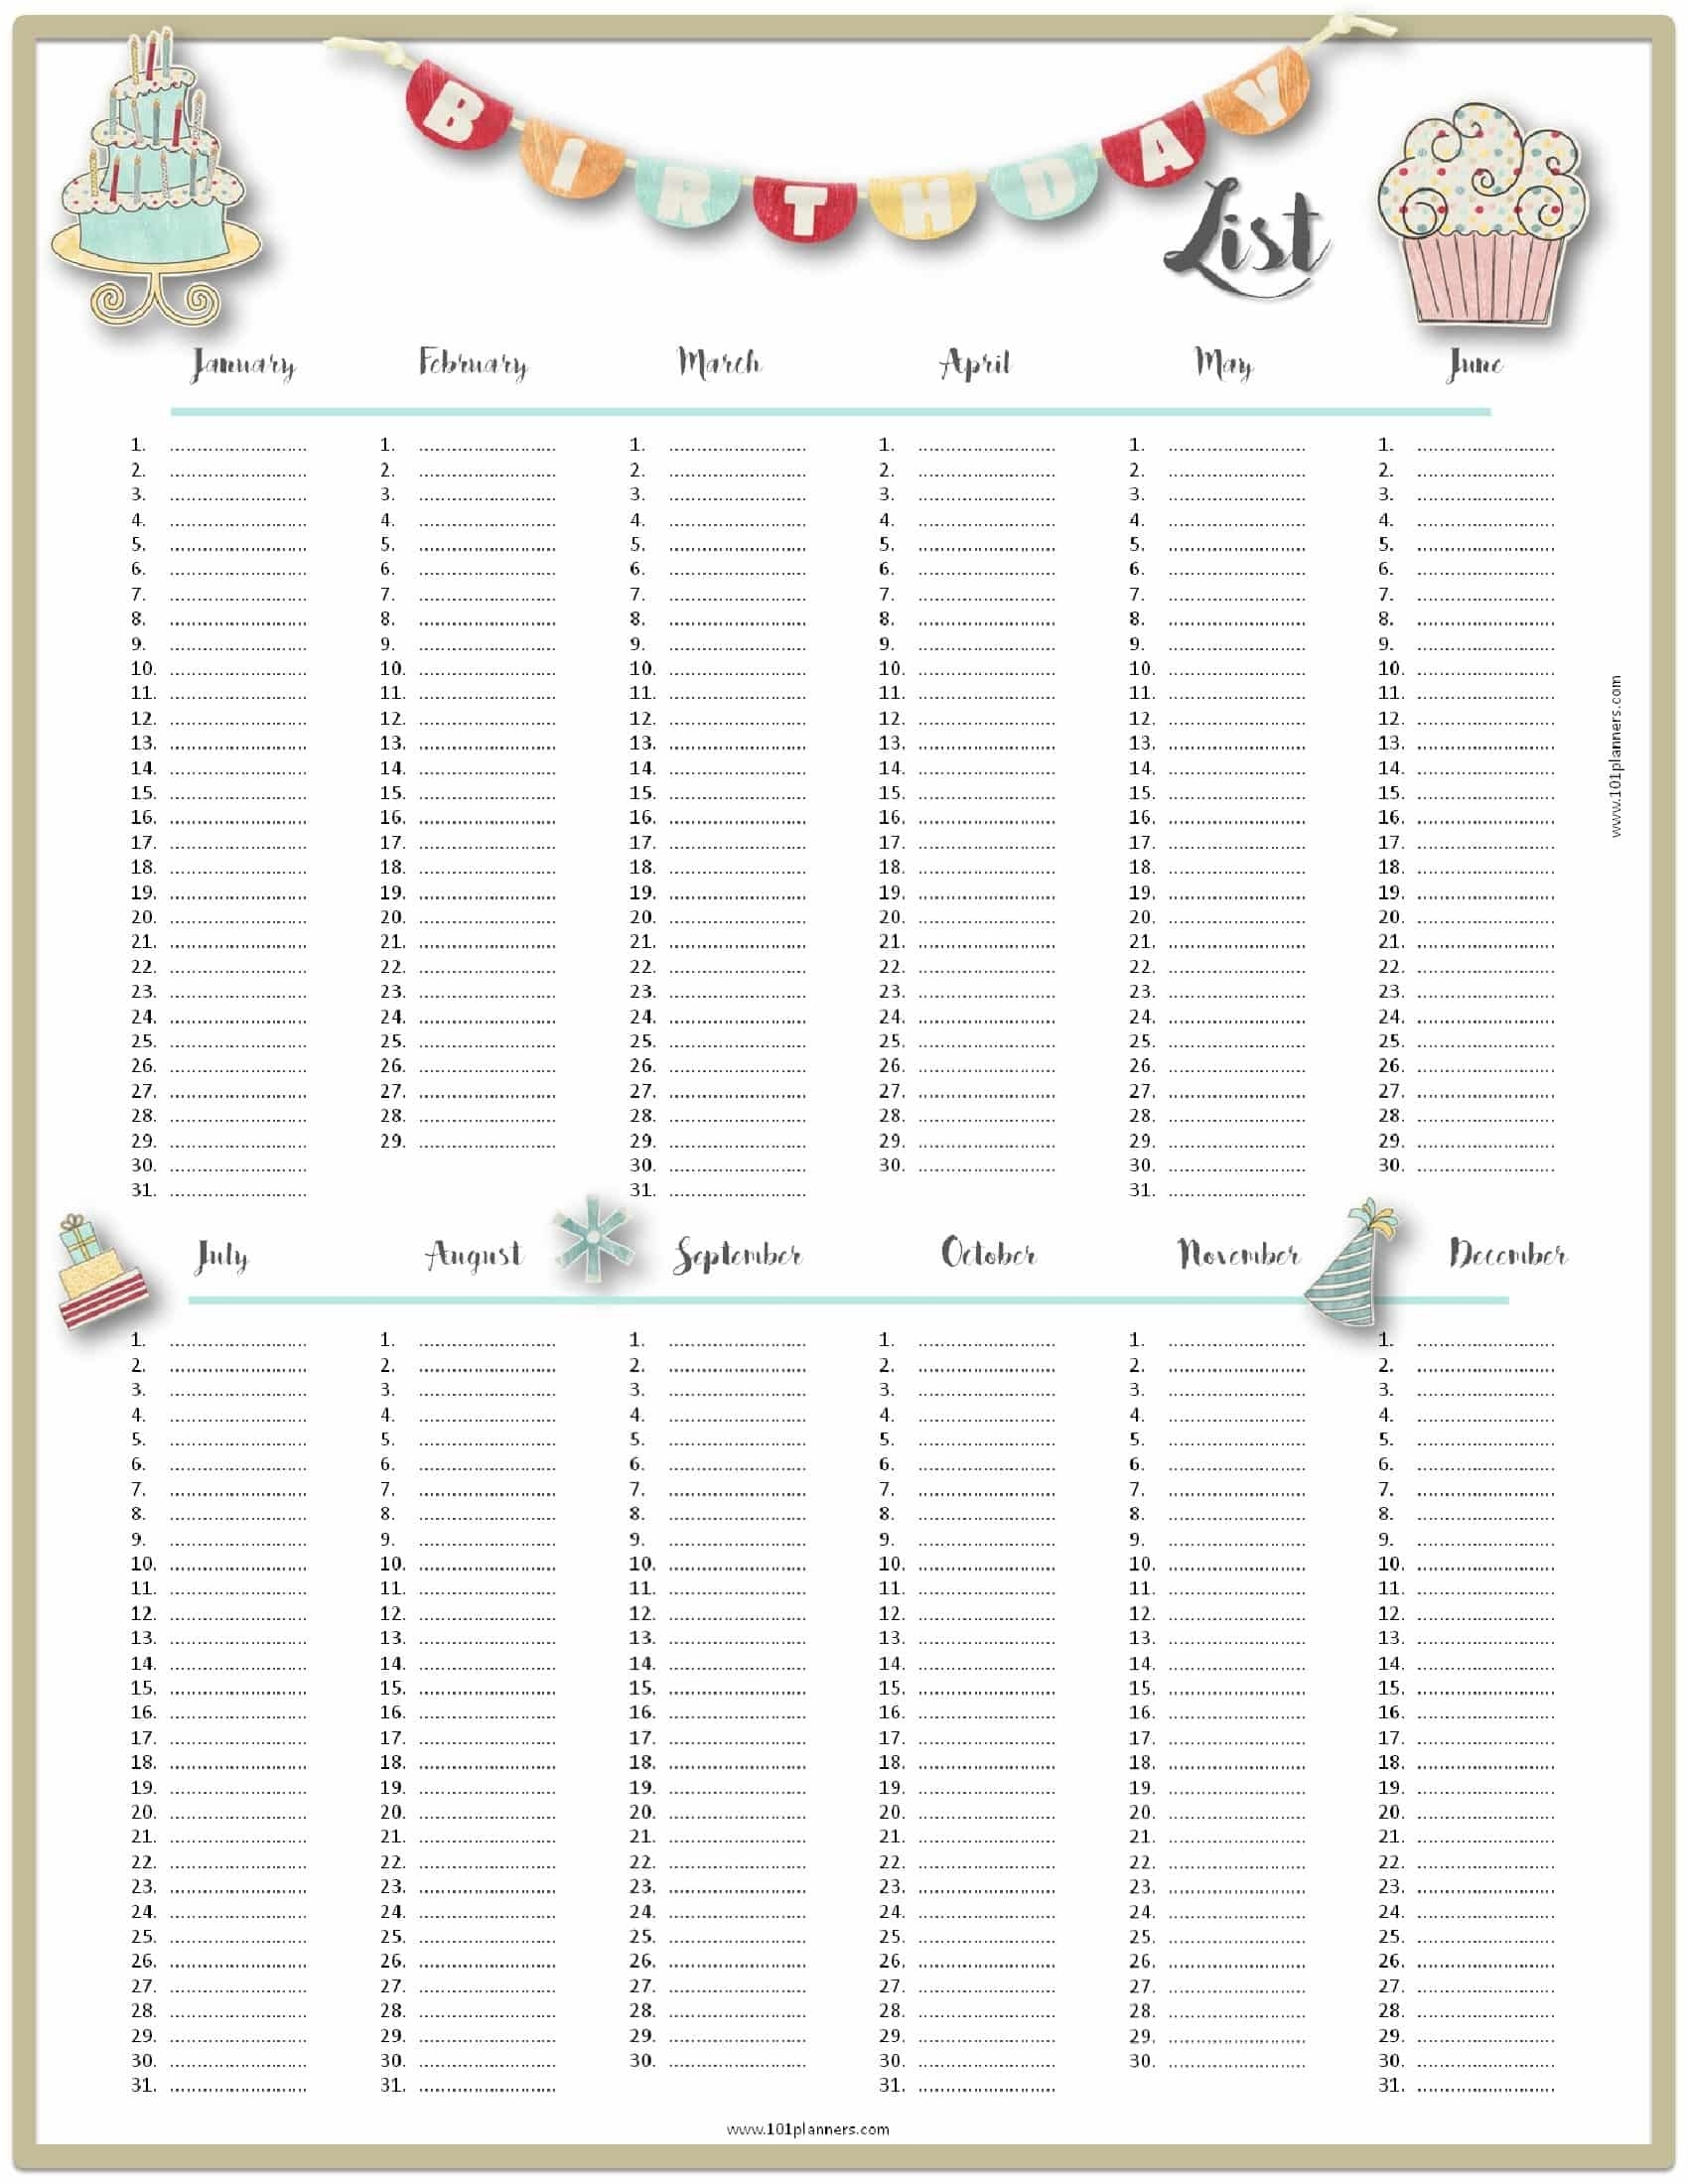 Free Birthday List Template | Customize Then Print within Frame Birthday Calendar Templates Free